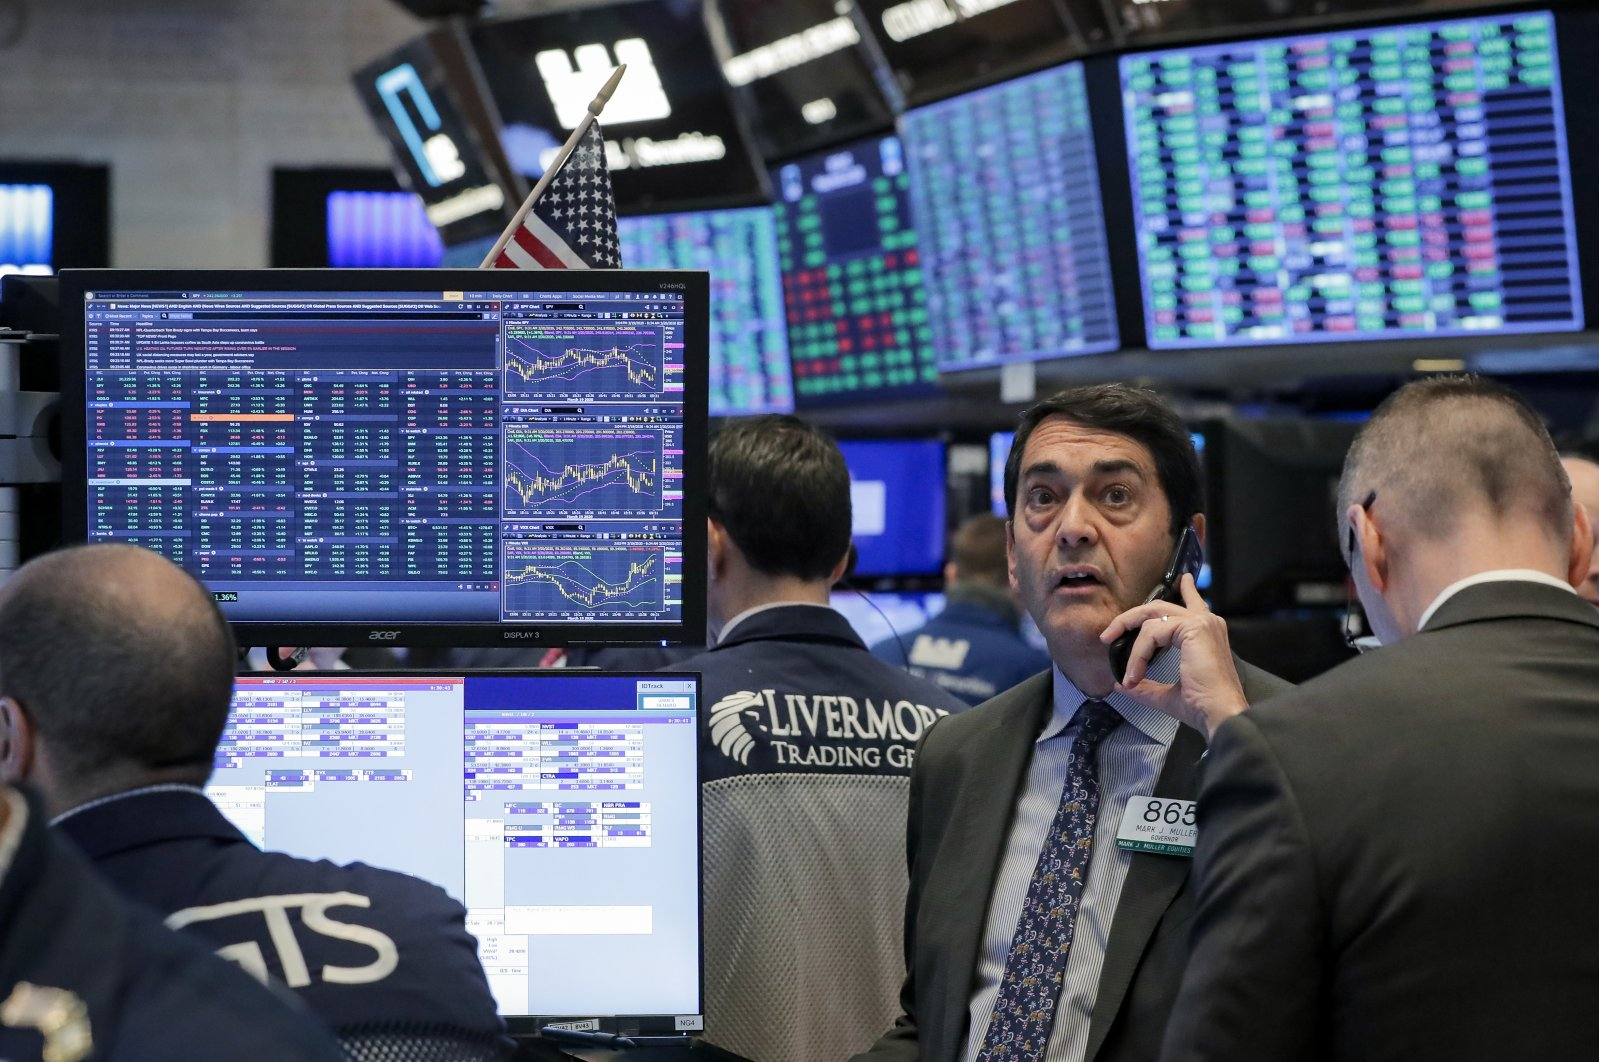 Traders work on the floor of the New York Stock Exchange in New York, U.S., March 20, 2020.